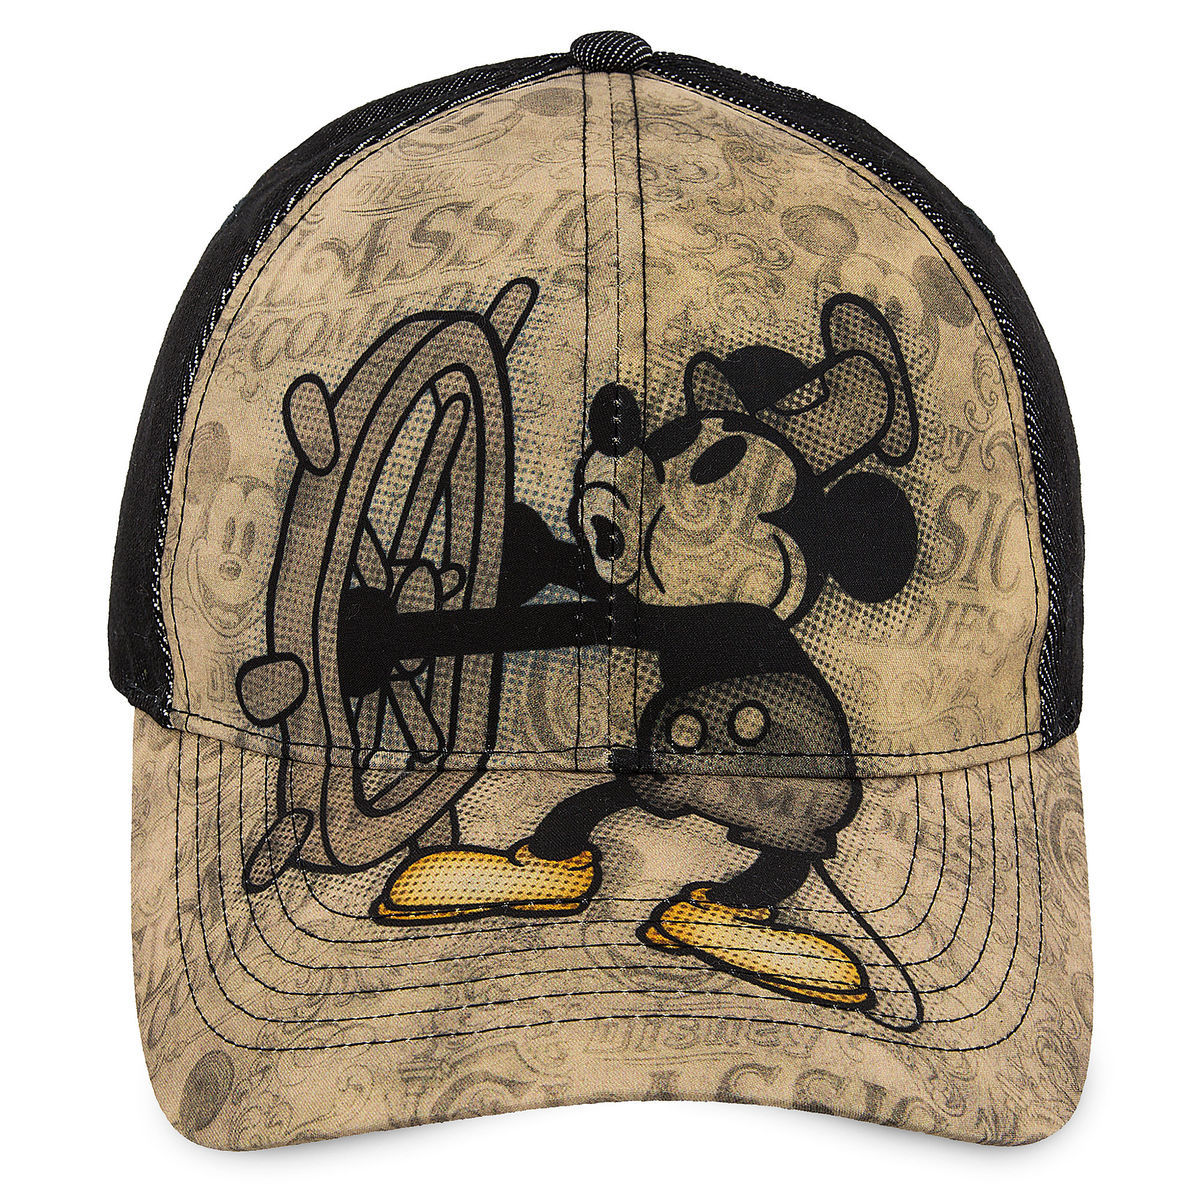 b10c398142e Product Image of Mickey Mouse Steamboat Willie Baseball Cap for Adults -  Walt Disney World